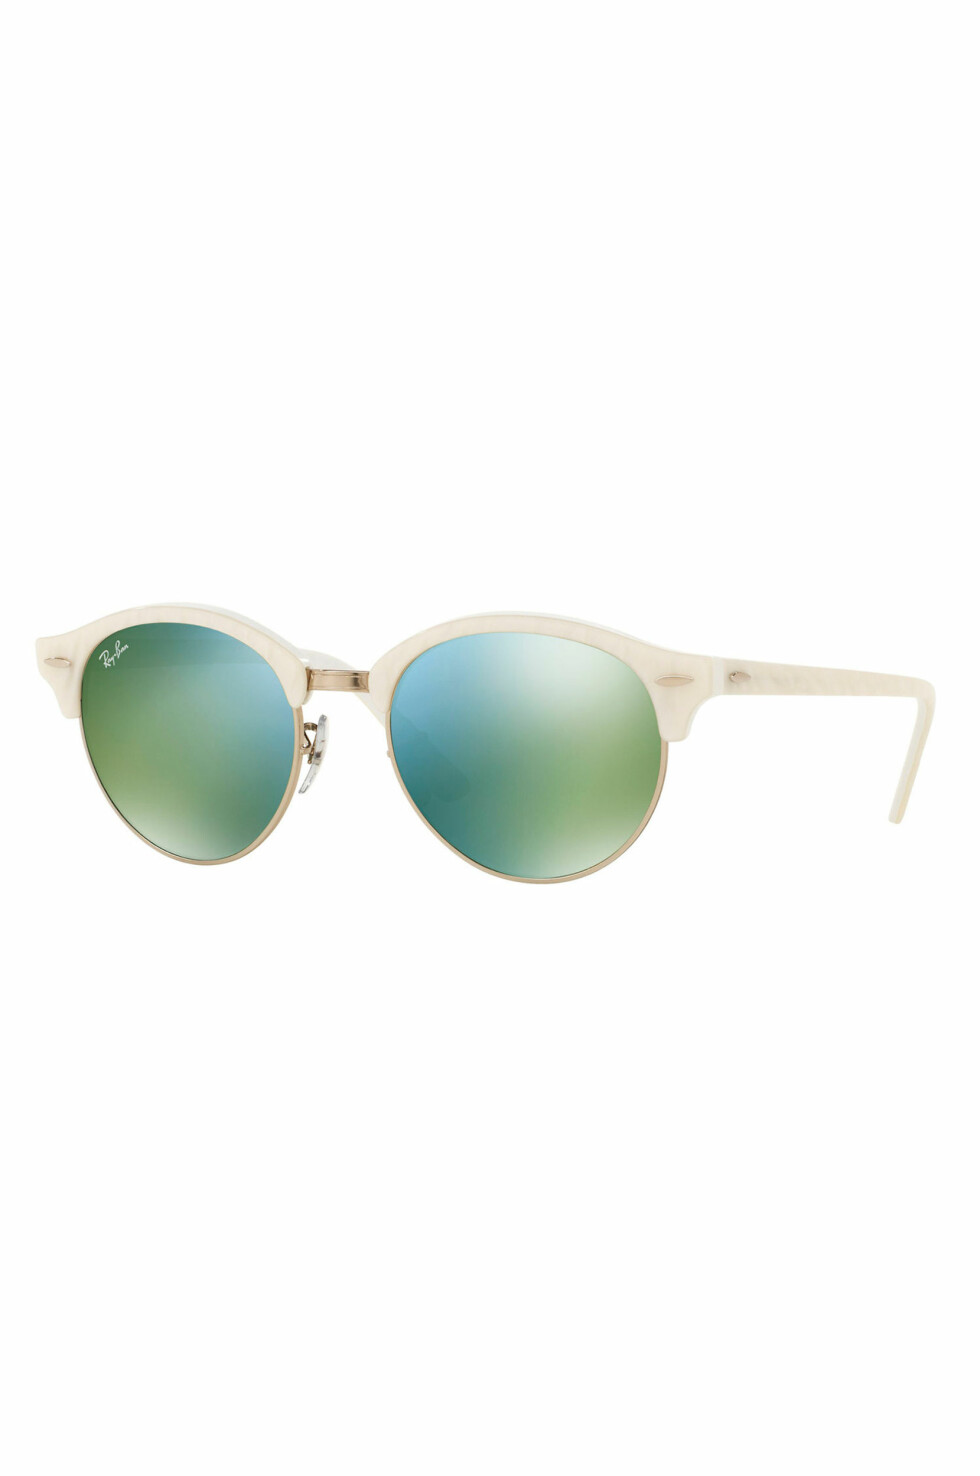 Solbriller fra Ray Ban via Ellos.no | kr 1799 | https://track.adtraction.com/t/t?a=1068408670&as=1115634940&t=2&tk=1&url=http://www.ellos.no/ray-ban/icons-rb4246-wrinkle-white/547475?N=1z141pu&Ns=RankValue3|1&Nao=1&selArt=274861&pr=0C1B2S3T